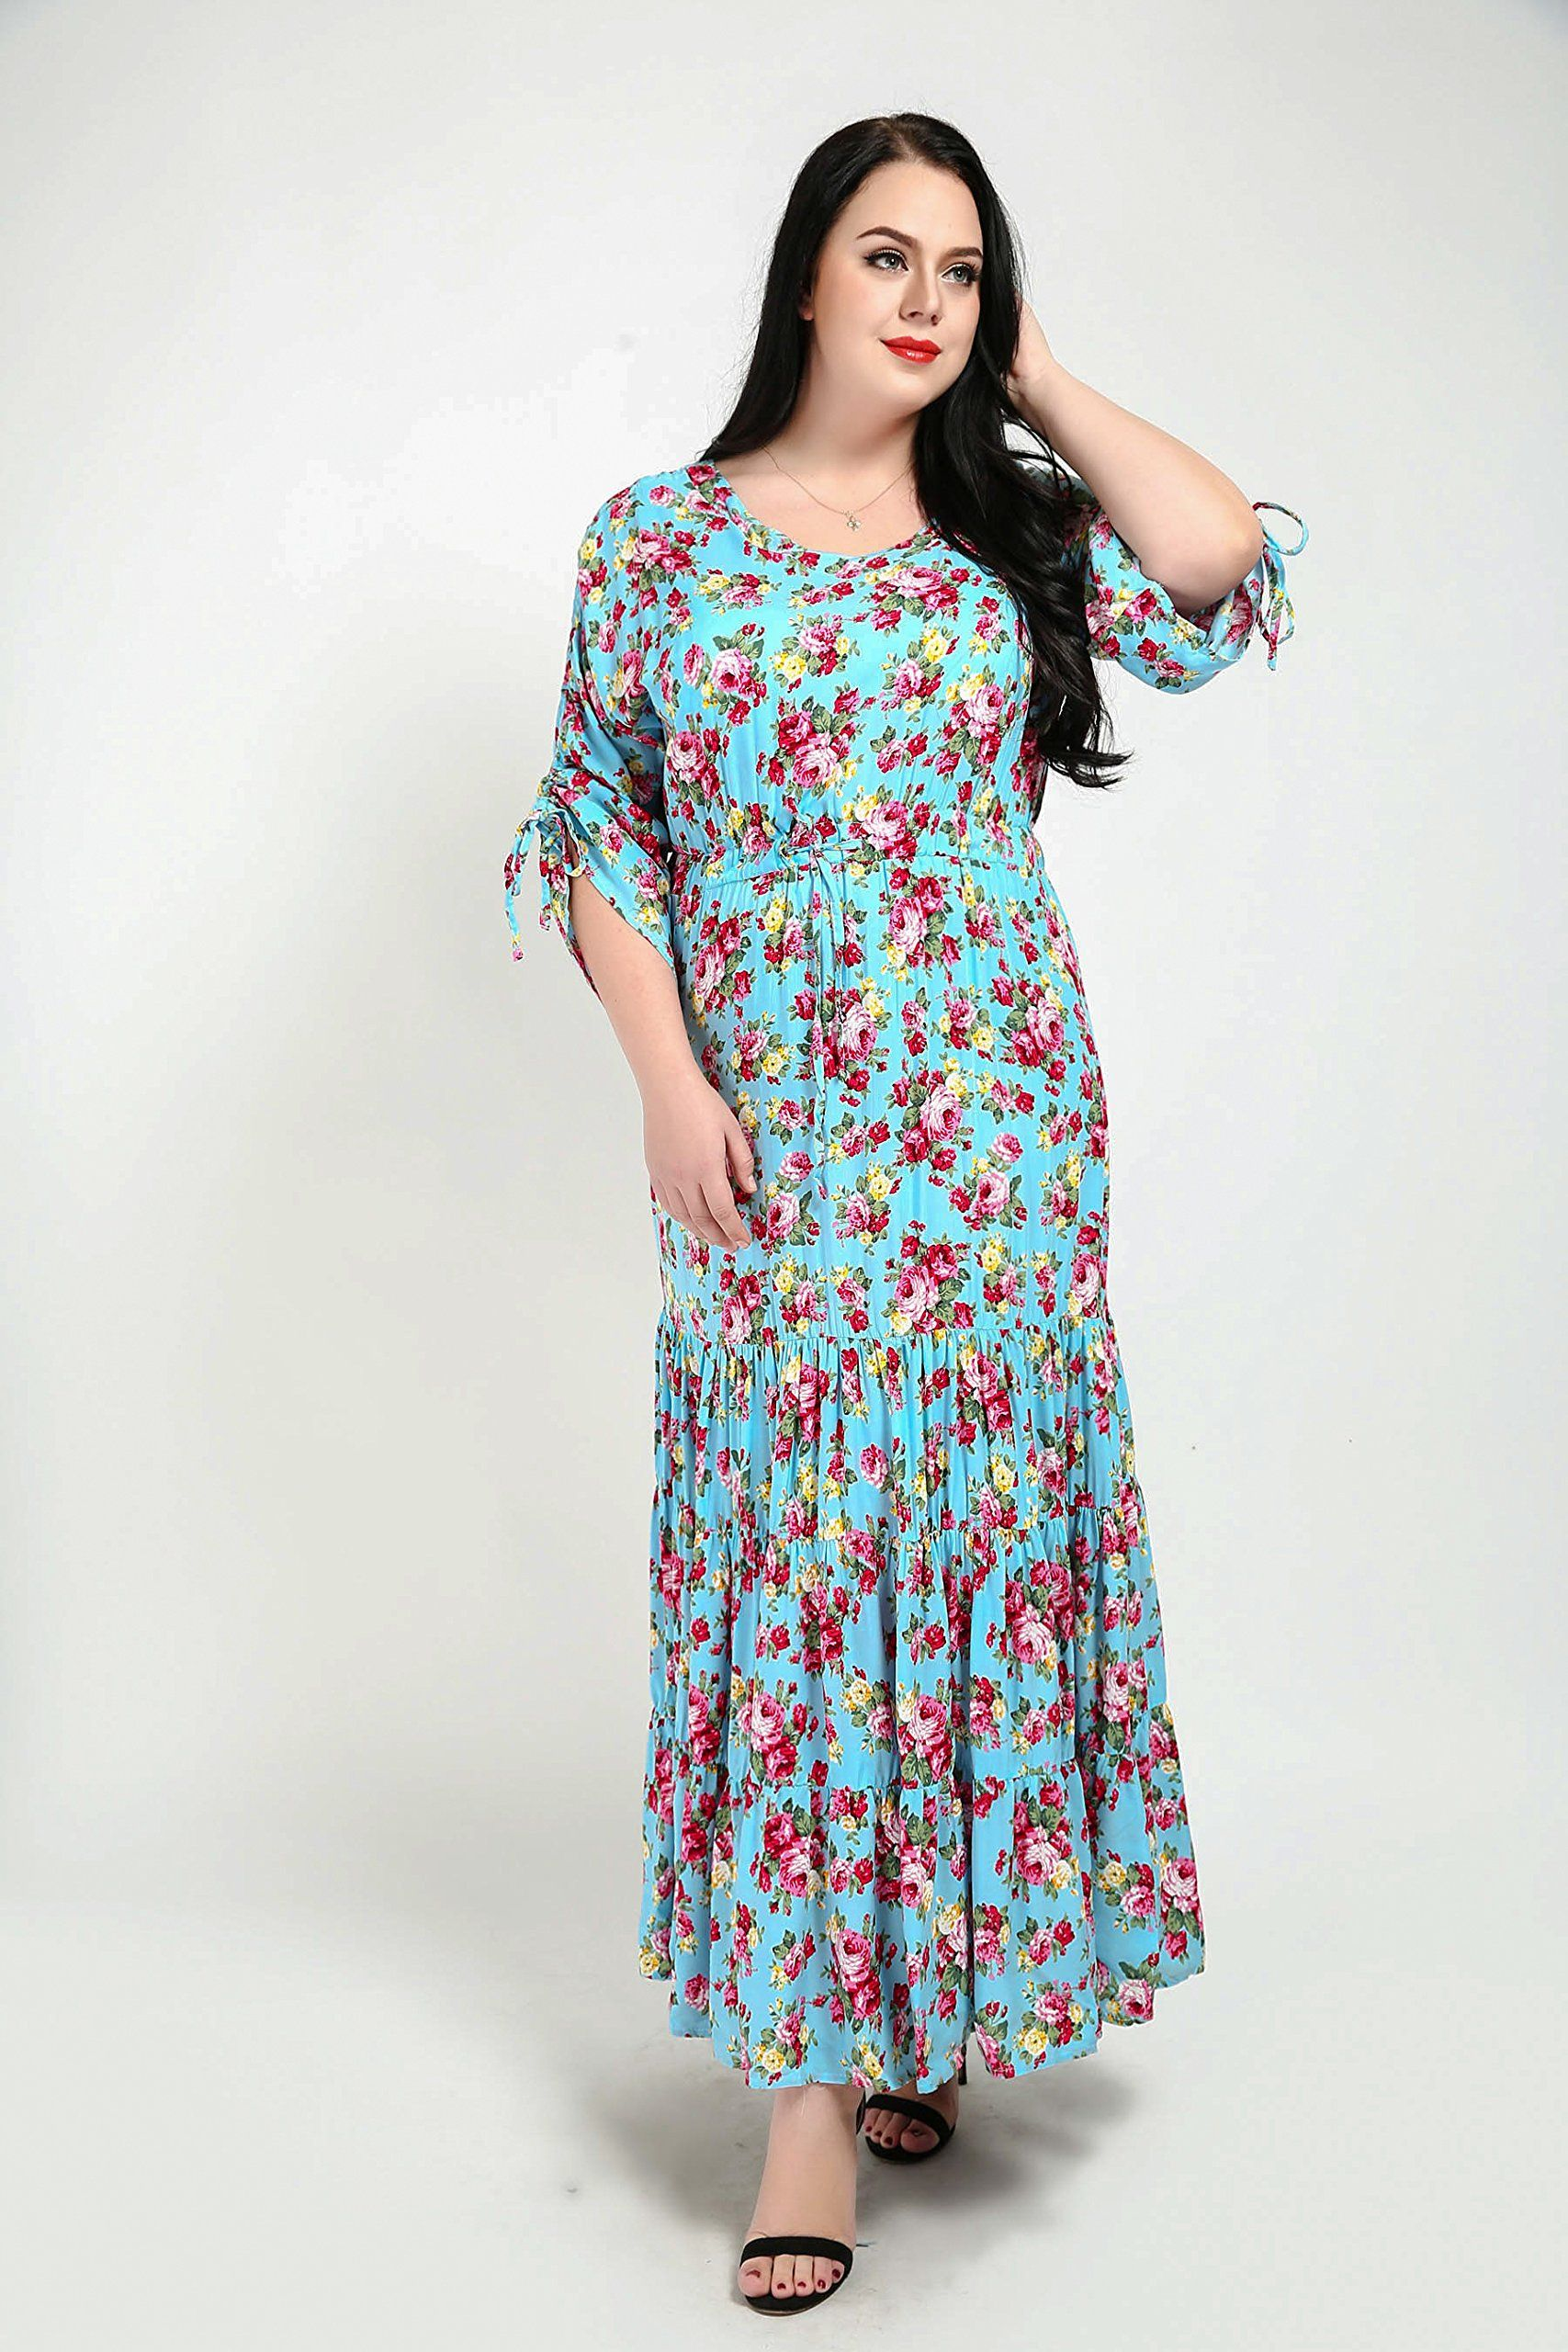 Canasour Womens 3 4 Sleeve Vintage Pink Floral Plus Size Maxi Dress Us Size 18 W Green For More In Maxi Dress Christmas Outfits Women Plus Size Maxi Dresses [ 2560 x 1707 Pixel ]